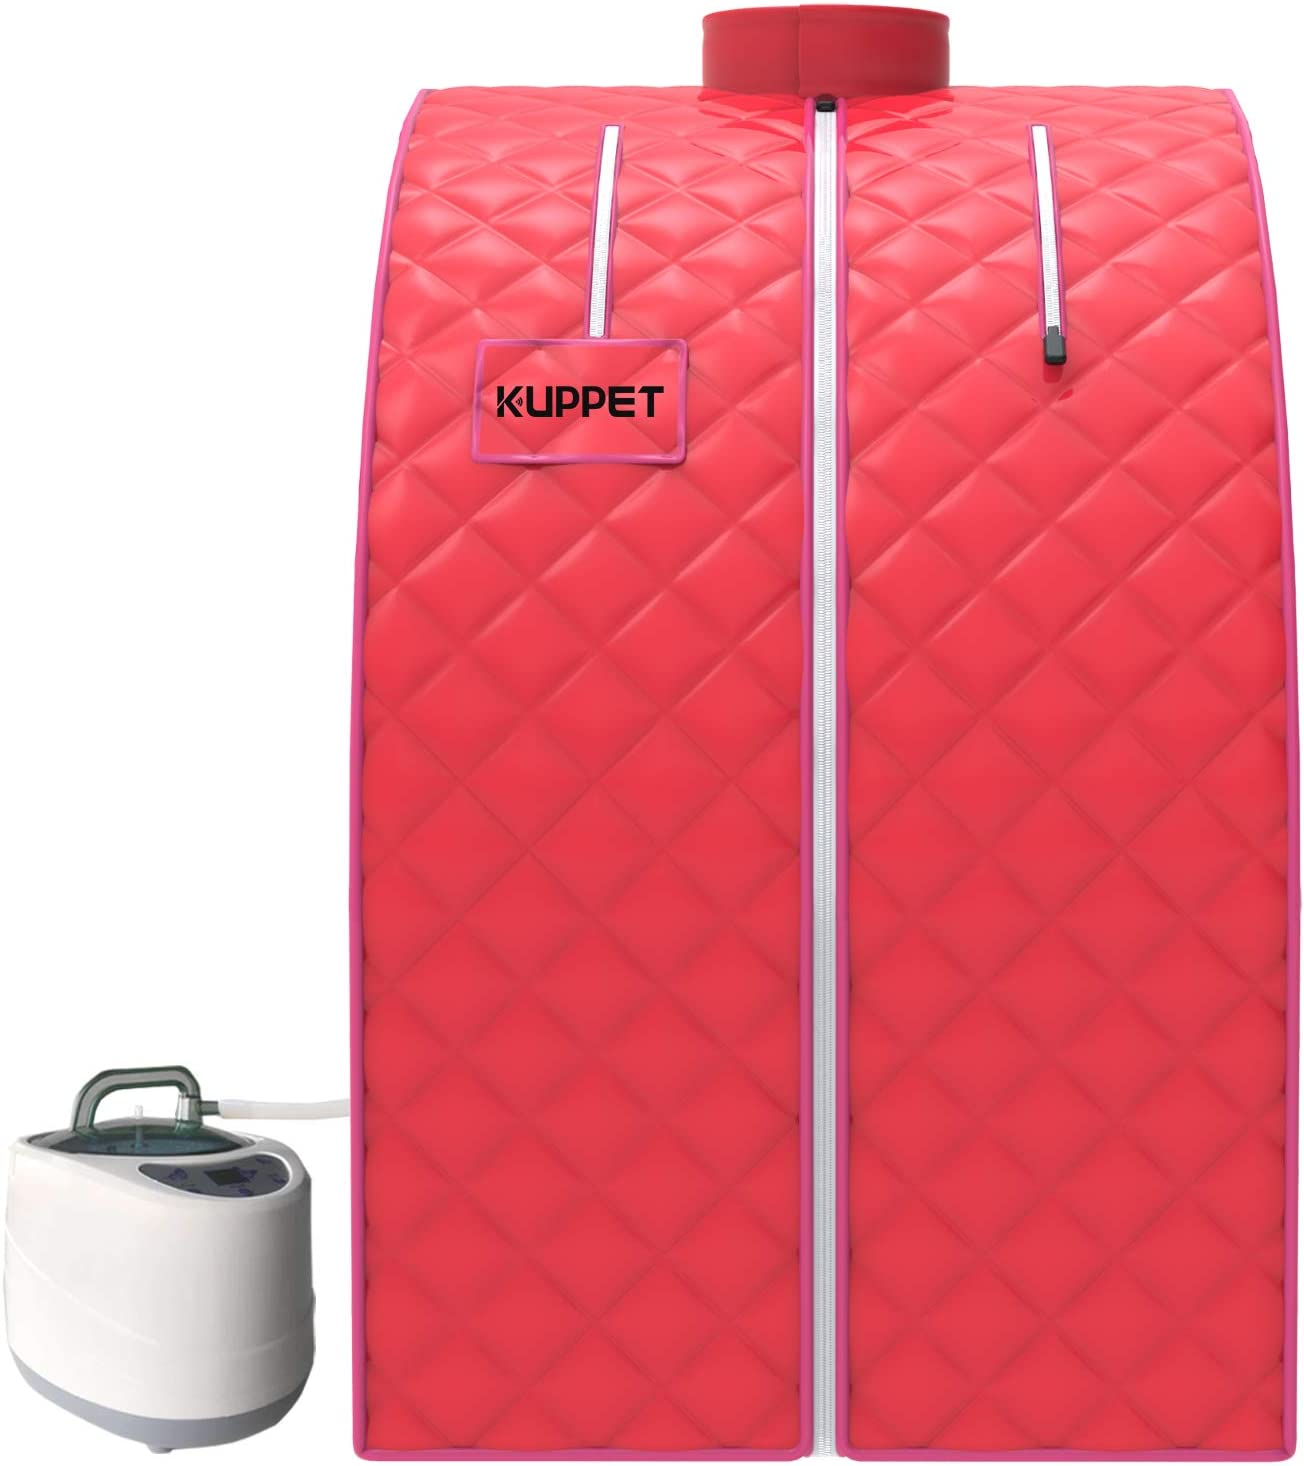 KUPPET Portable Folding Steam Sauna-2L One Person Home Sauna Spa for Full Body Slimming Loss Weight w/Chair, Remote Control, Steam Pot, Foot Rest, Mat (Pink)